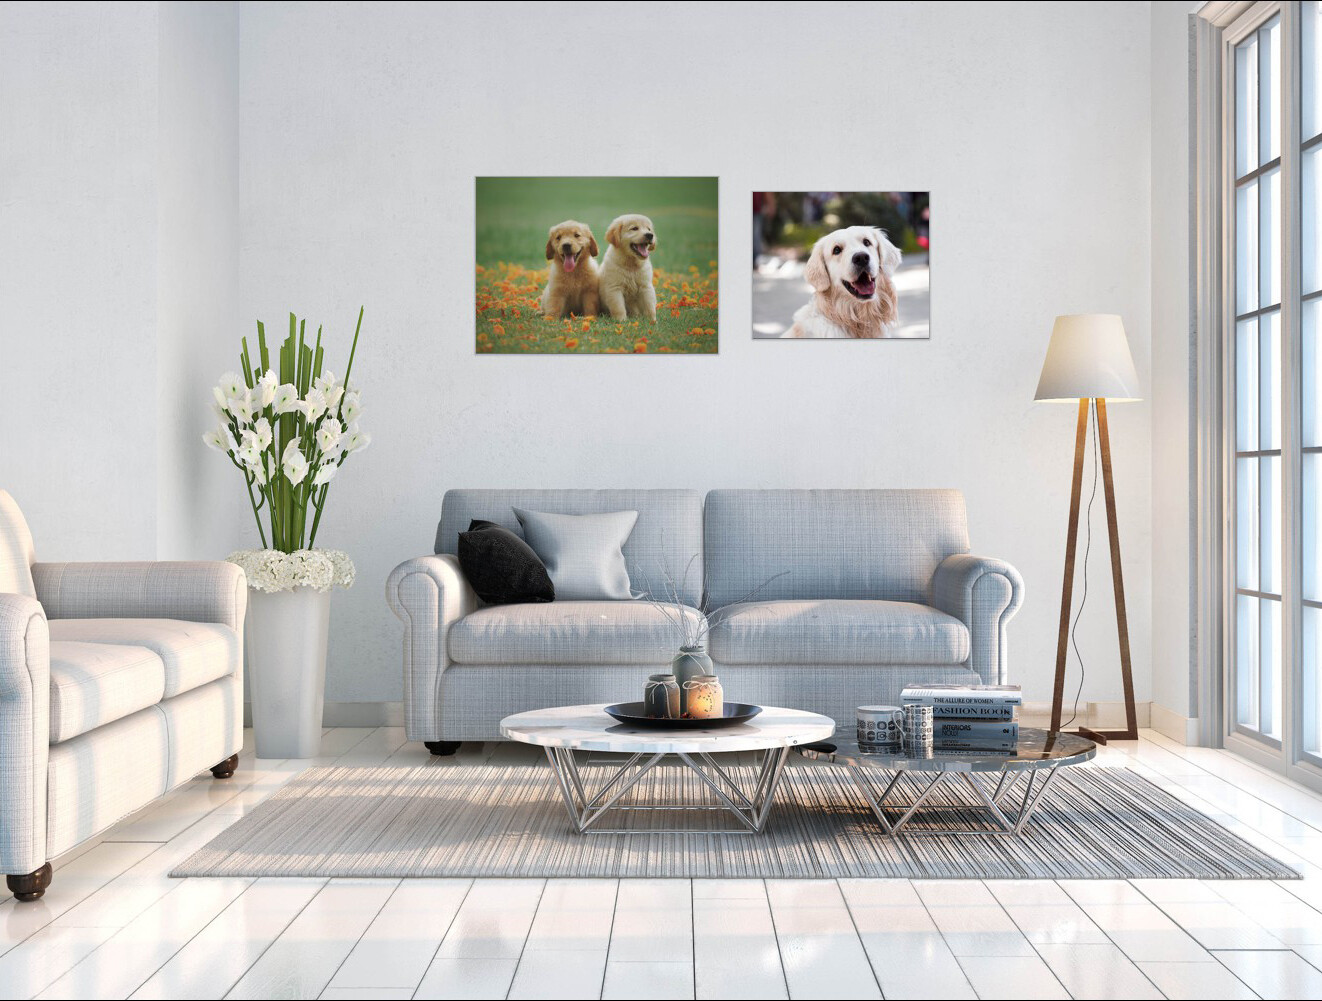 """Your Pets Photo On Canvas 20"""" x 16"""" (51cm x 41cm) others sizes available"""